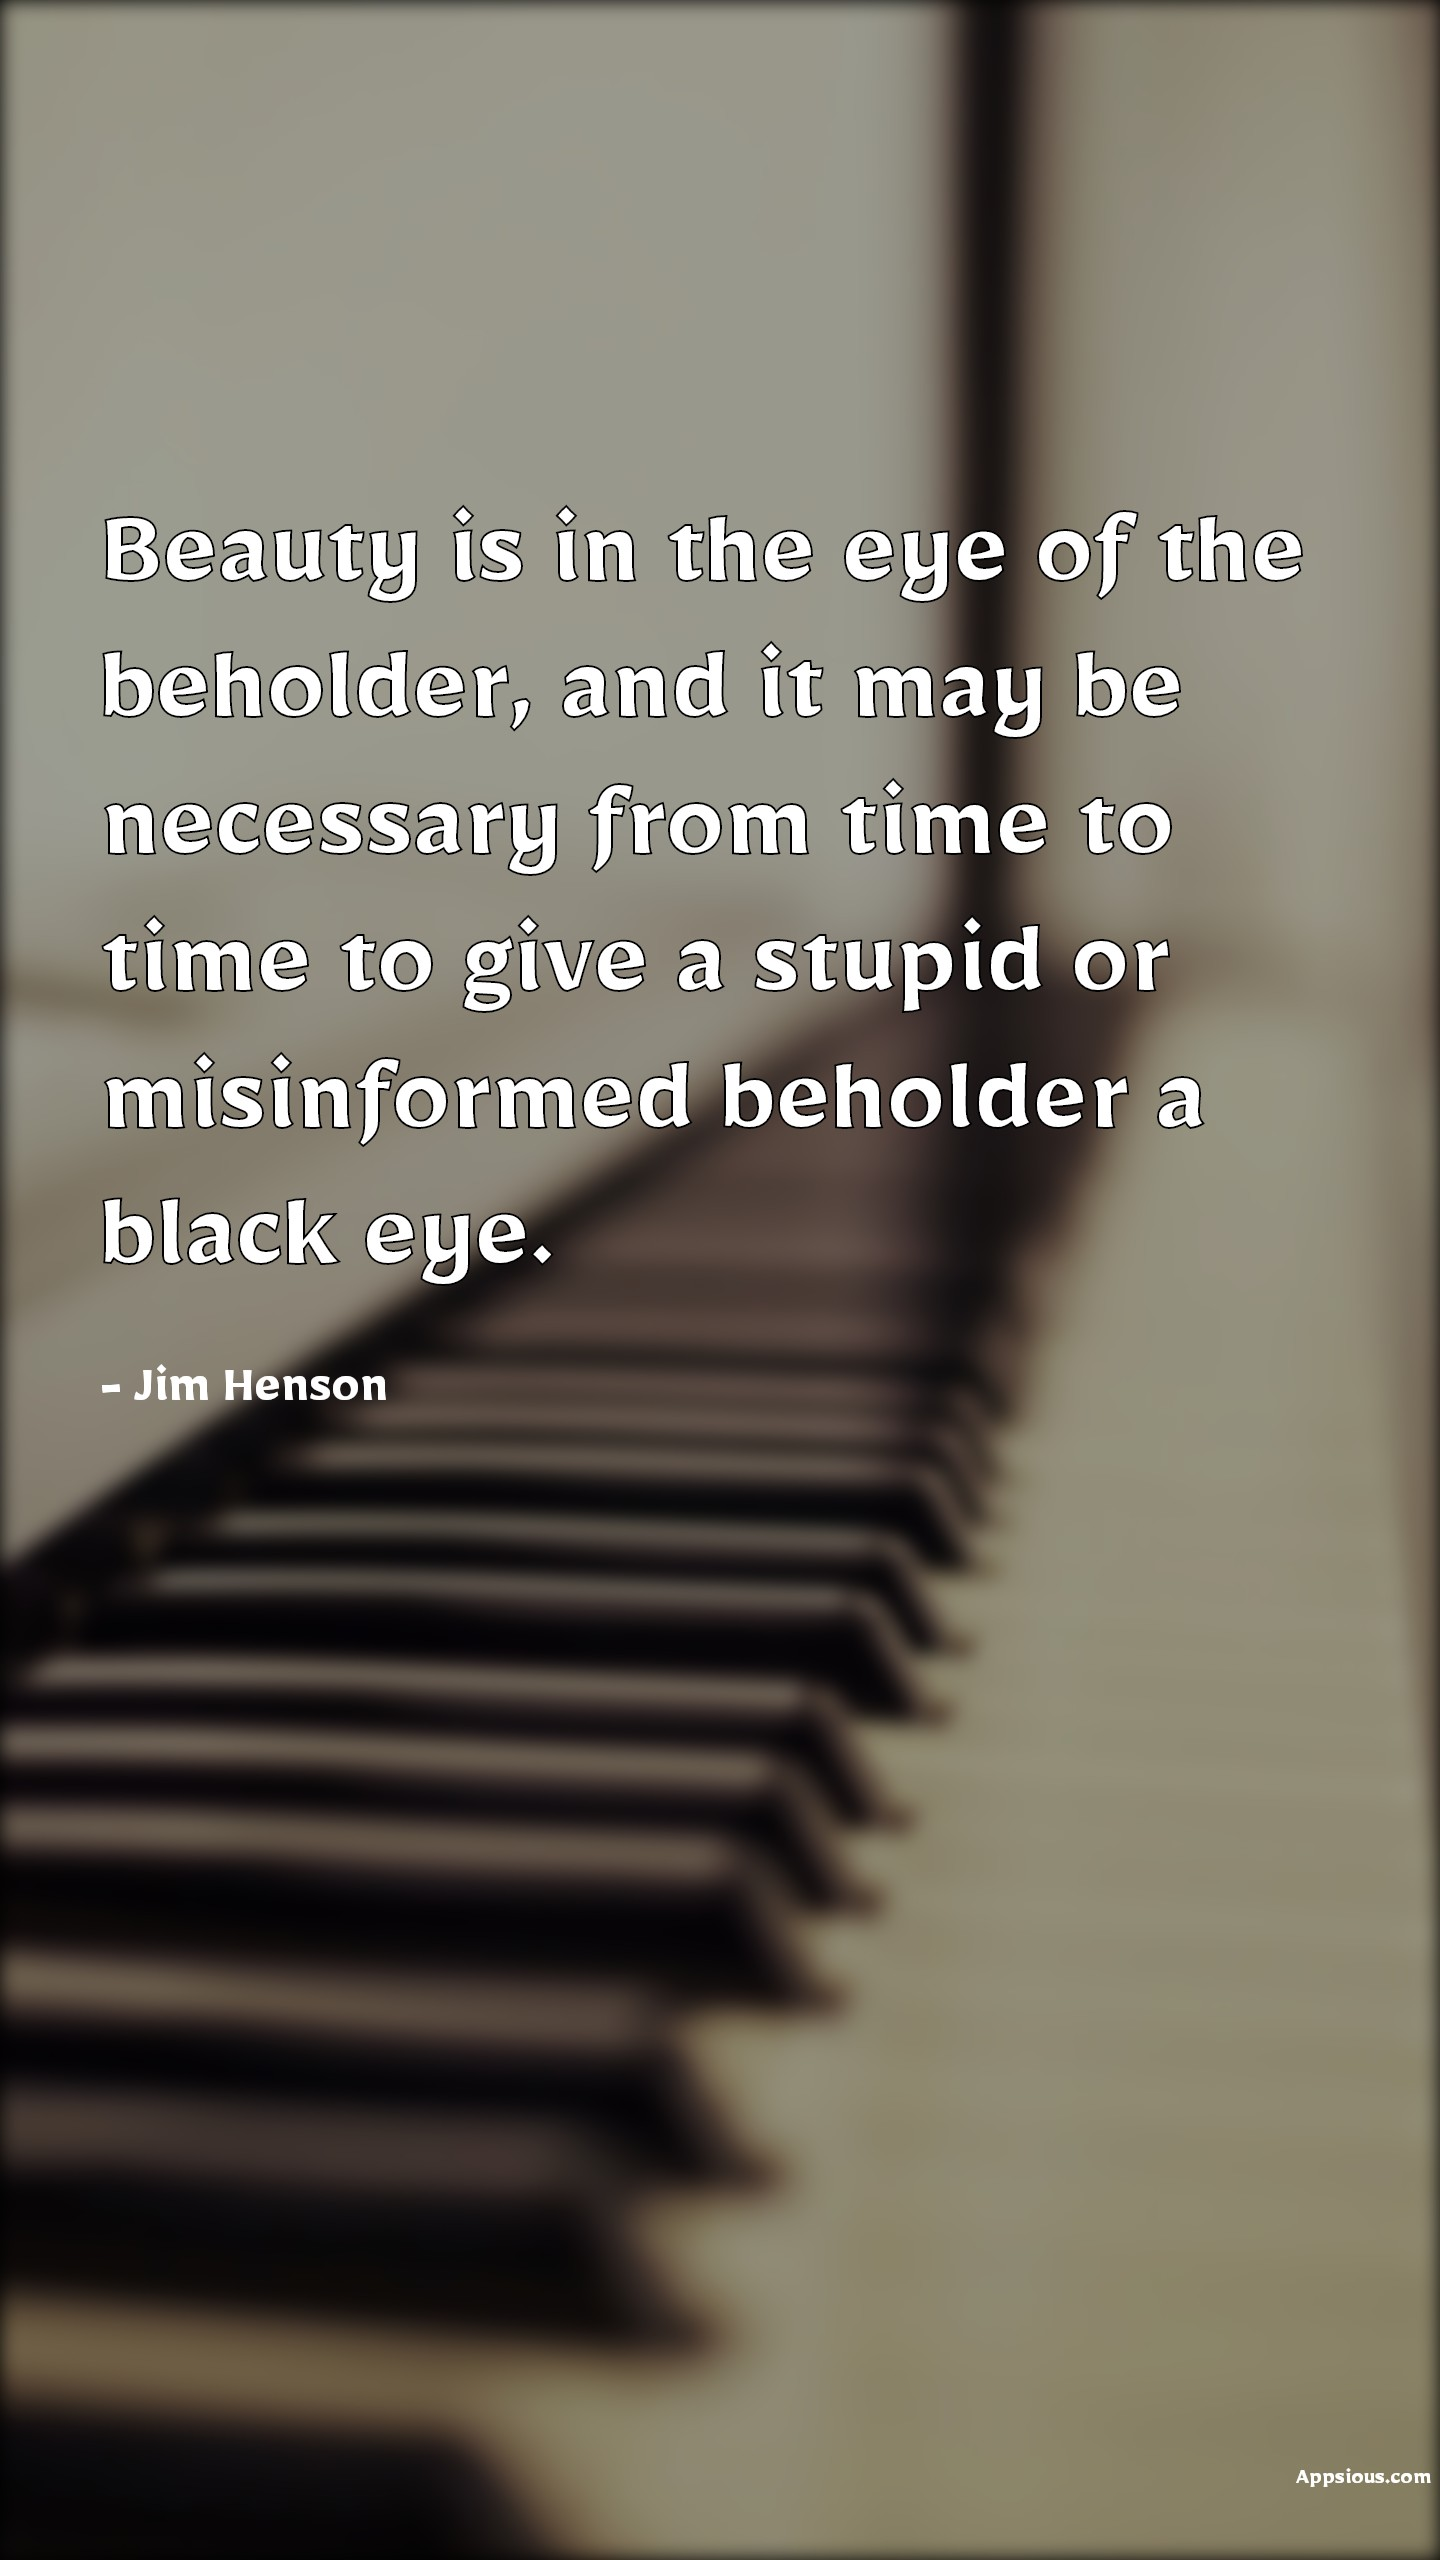 Beauty is in the eye of the beholder, and it may be necessary from time to time to give a stupid or misinformed beholder a black eye.